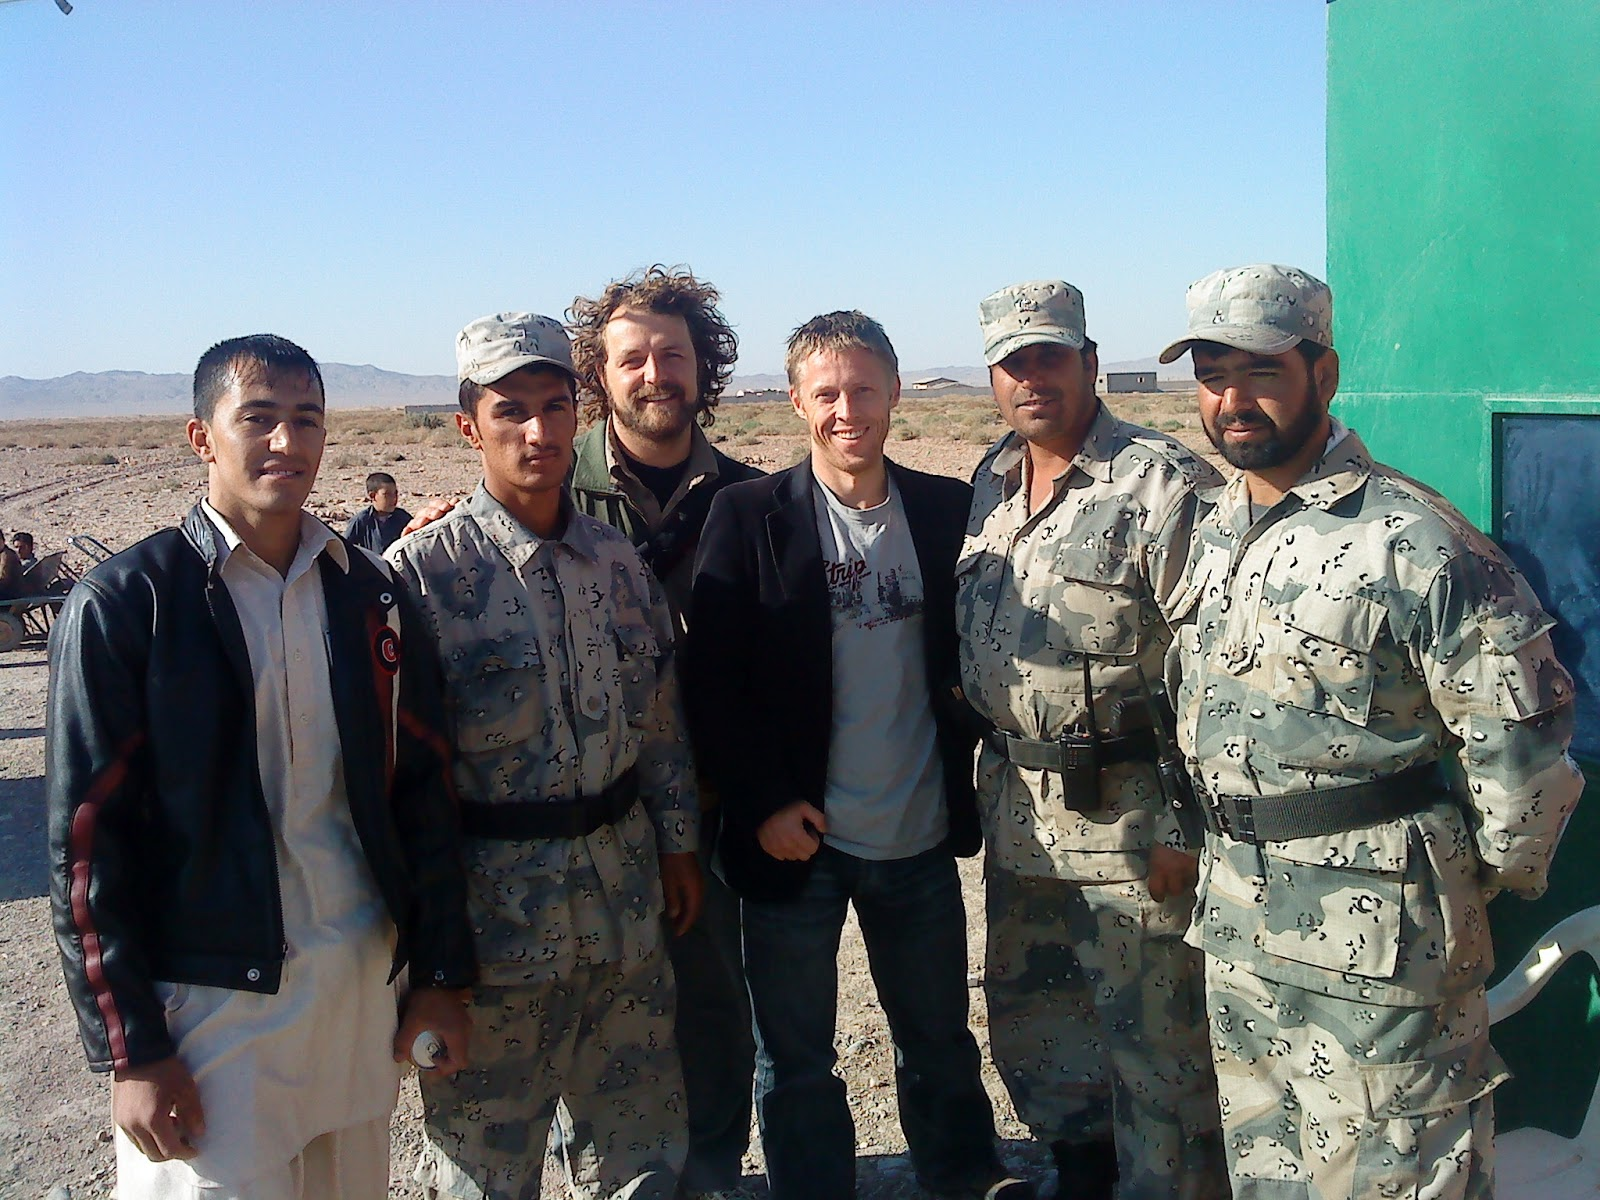 At the Afganistan/Iran border.